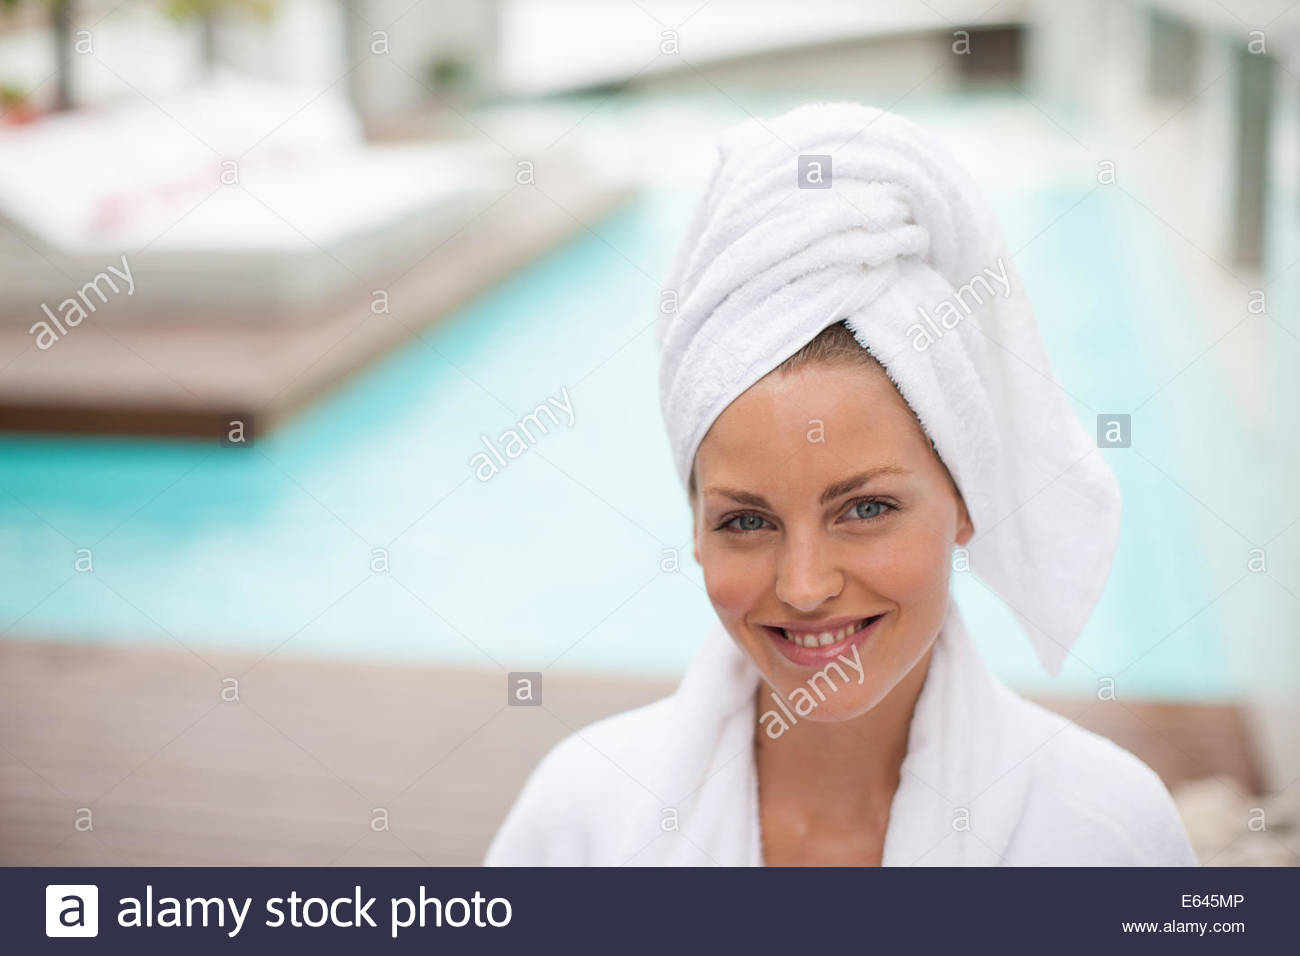 Woman with hair wrapped in towel at poolside - Stock Image